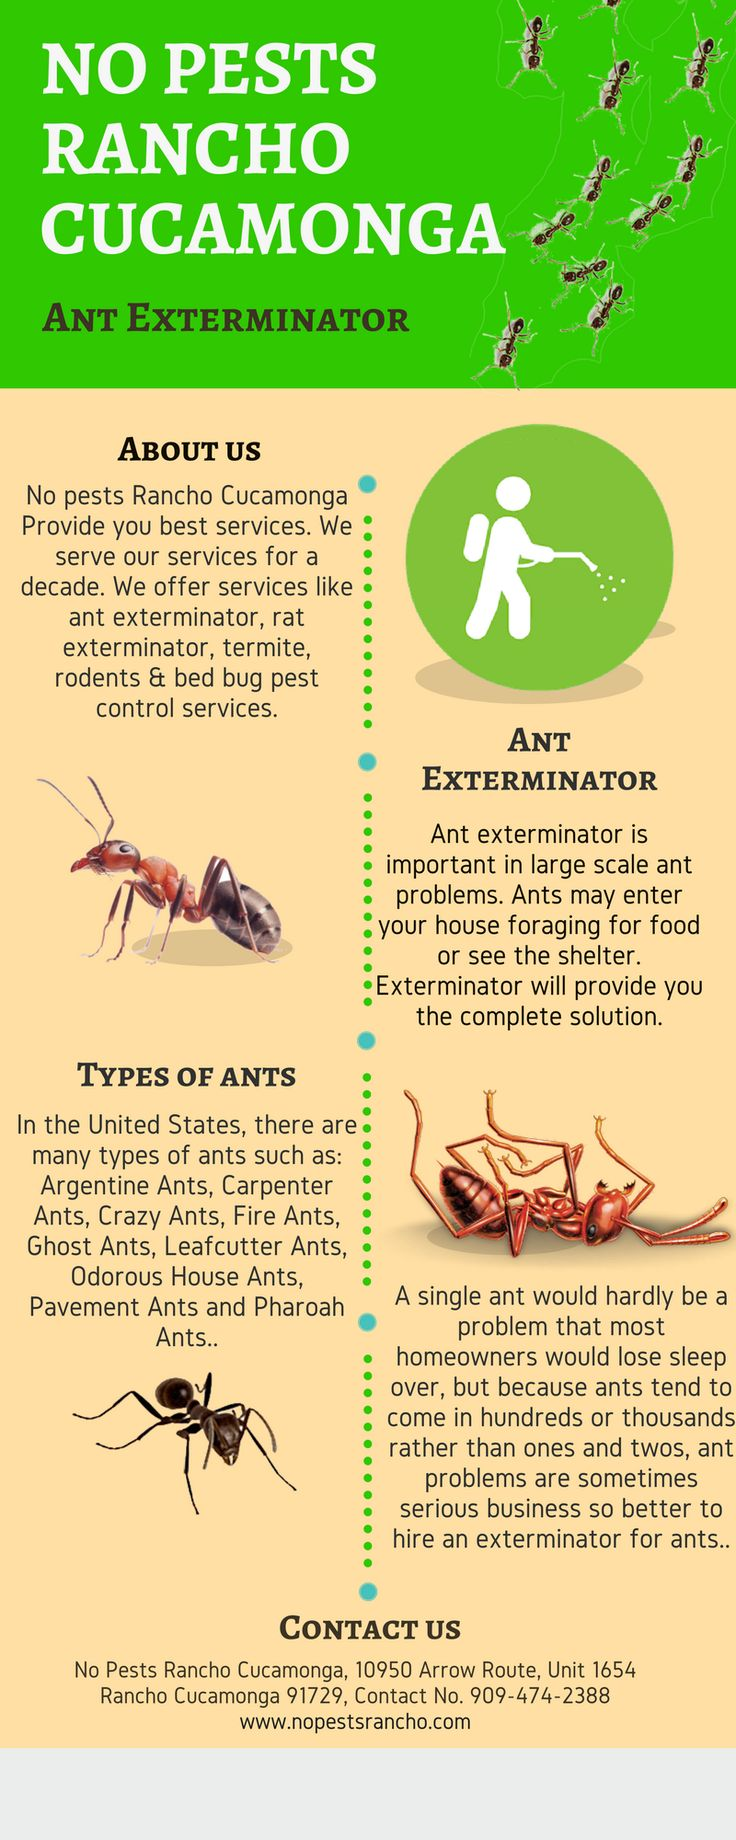 Are you searching for an ant exterminator in Rancho Cucamonga & Claremont? If yes, Then No Pests Rancho Cucamonga serves you the best services. They have an experienced team member who does their job very excellent. They also offer services like rat exterminator, termite, rodents, roaches & bed bug pest control. For more details you can visit at - http://nopestsrancho.com/